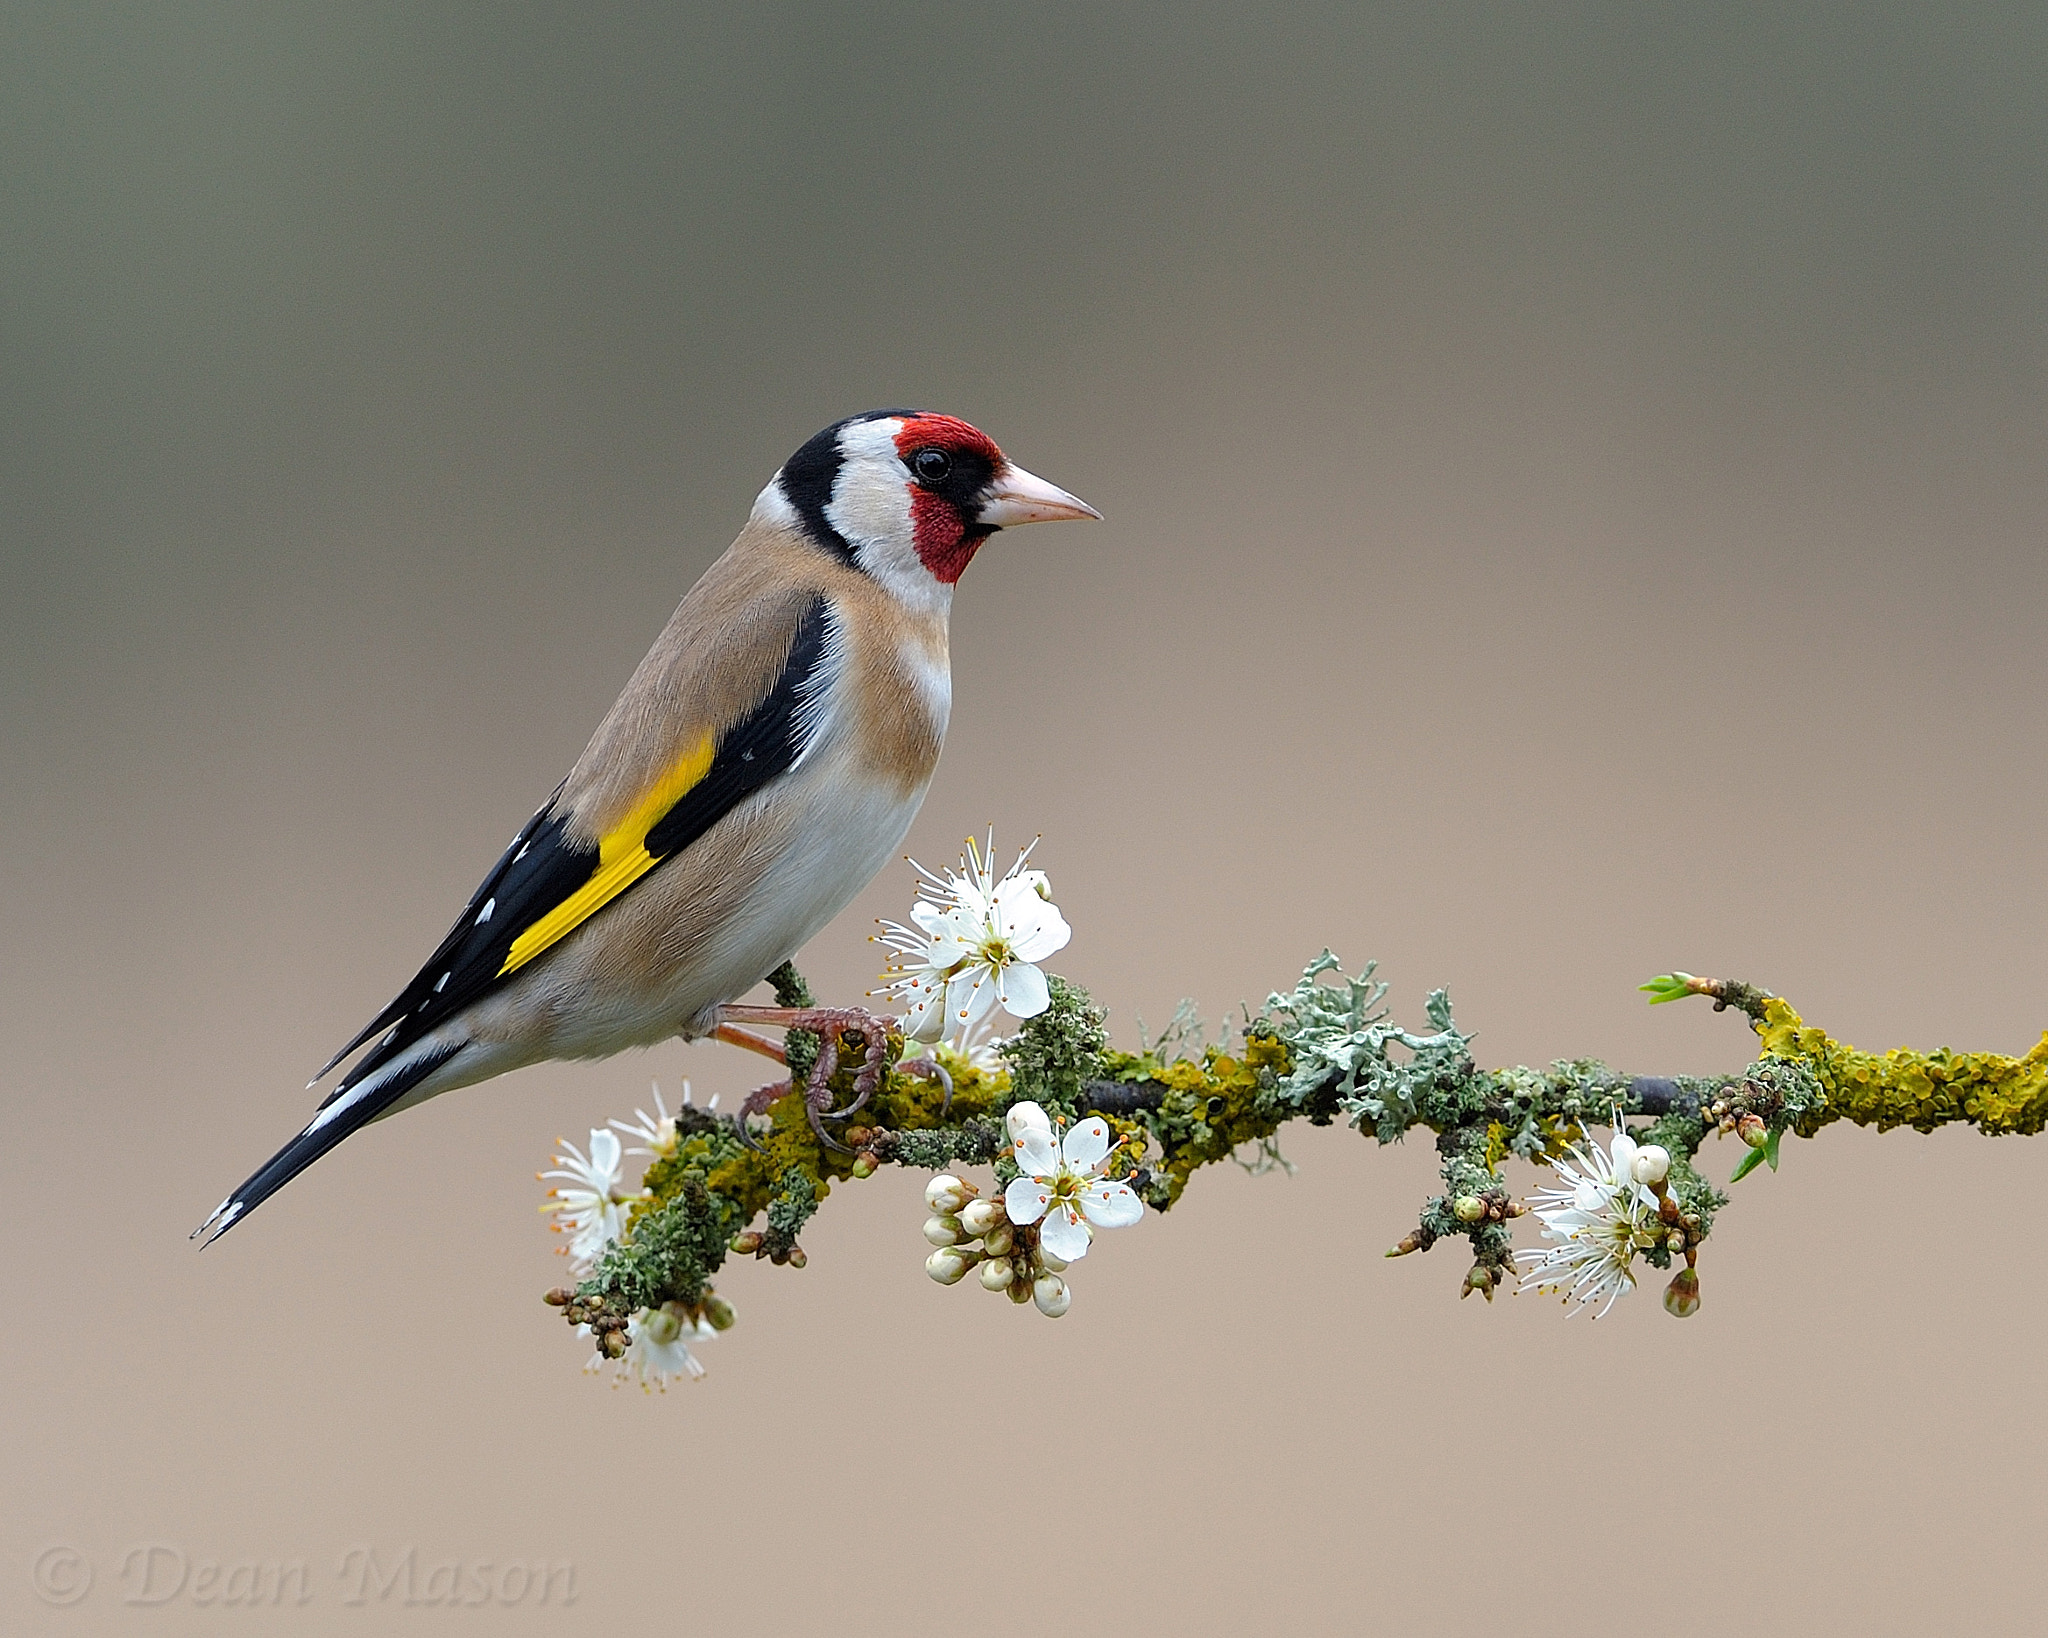 Photograph Goldfinch on Sloe Blossom II by Dean Mason on 500px